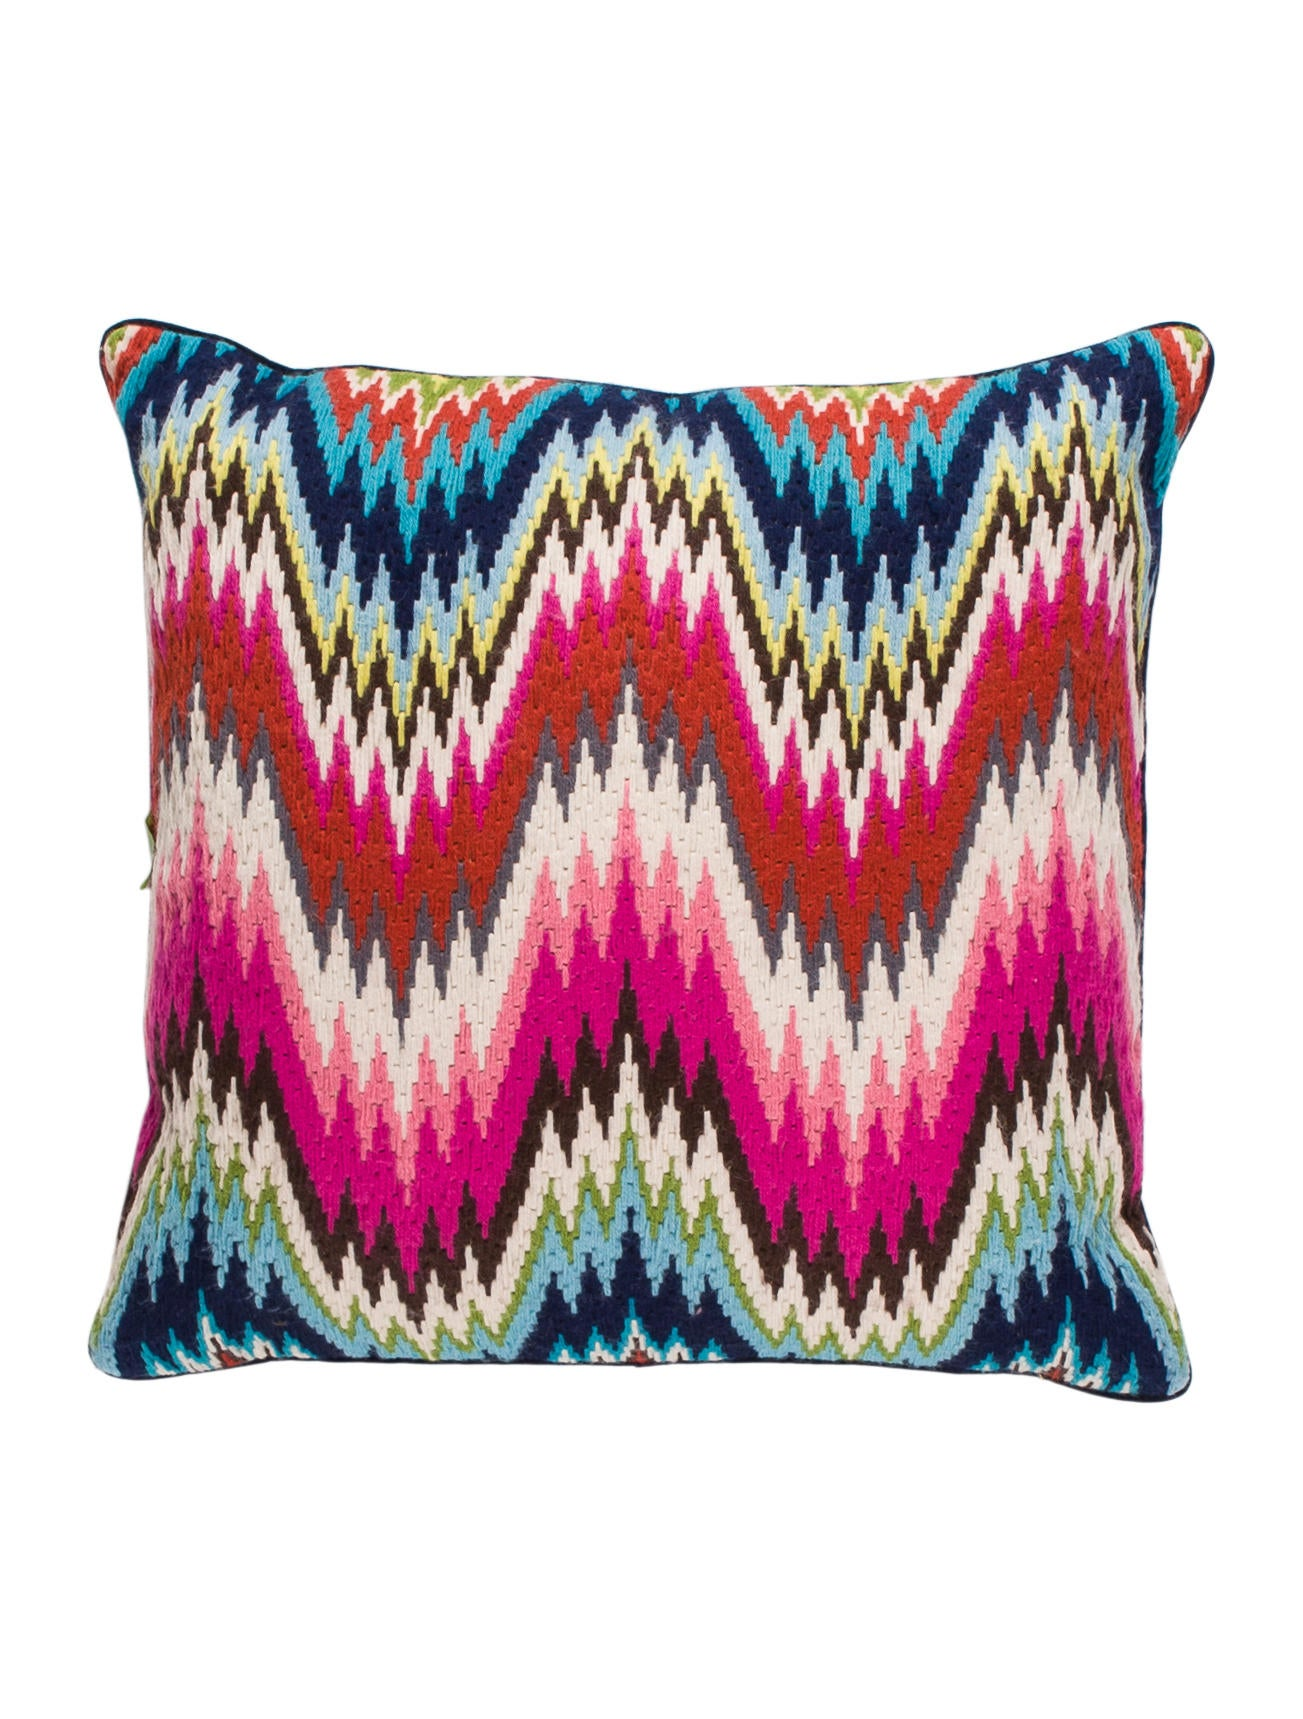 Throw Pillows Justice : Jonathan Adler Needlepoint Throw Pillow - Pillows And Throws - JTADL20861 The RealReal